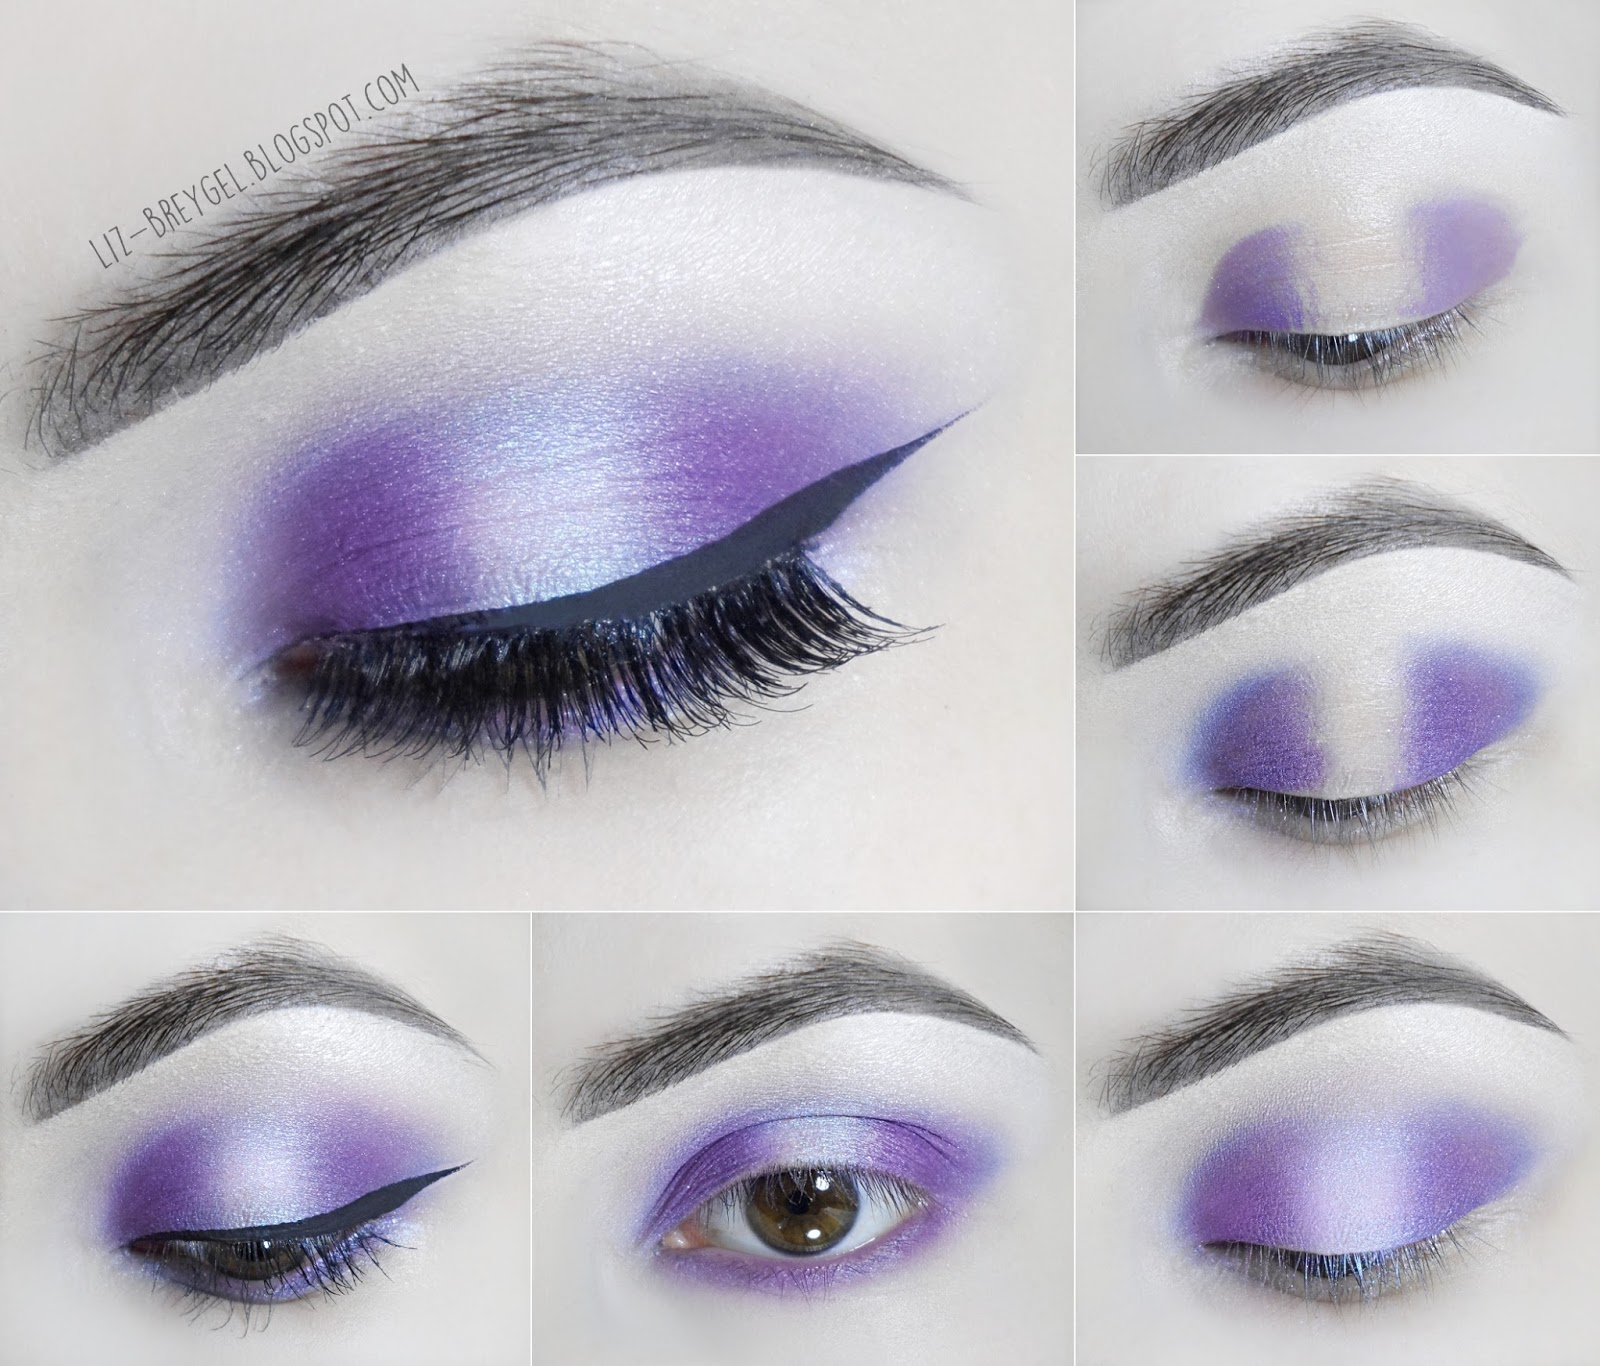 liz breygel how to Amethyst step by step Makeup Tutorial February Birthstone pictures